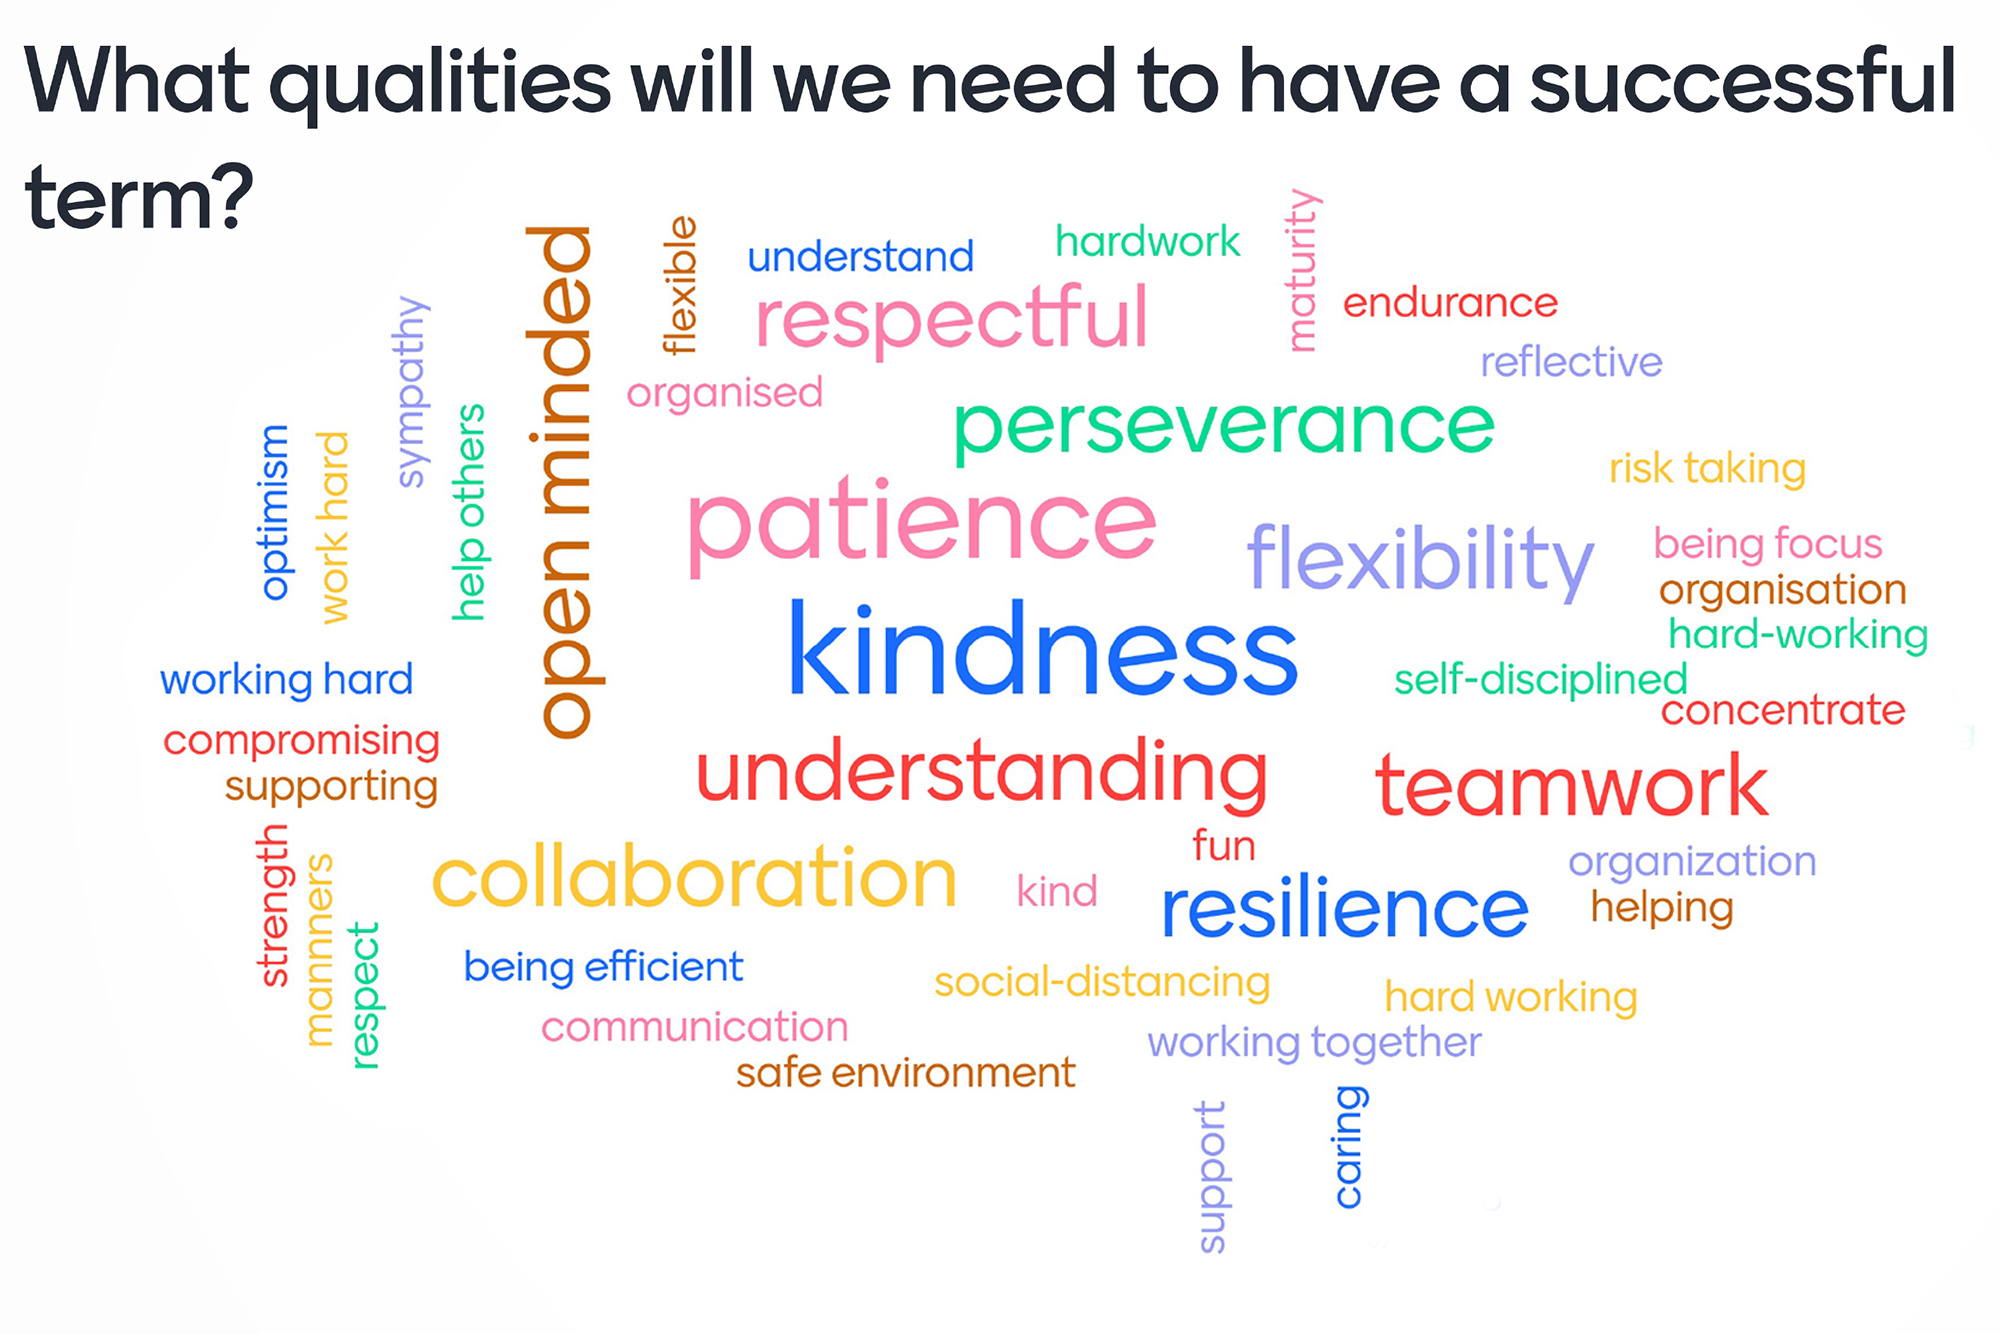 5-what-qualities-will-we-need-to-have-a-successful-termjpg-51203040-pixels